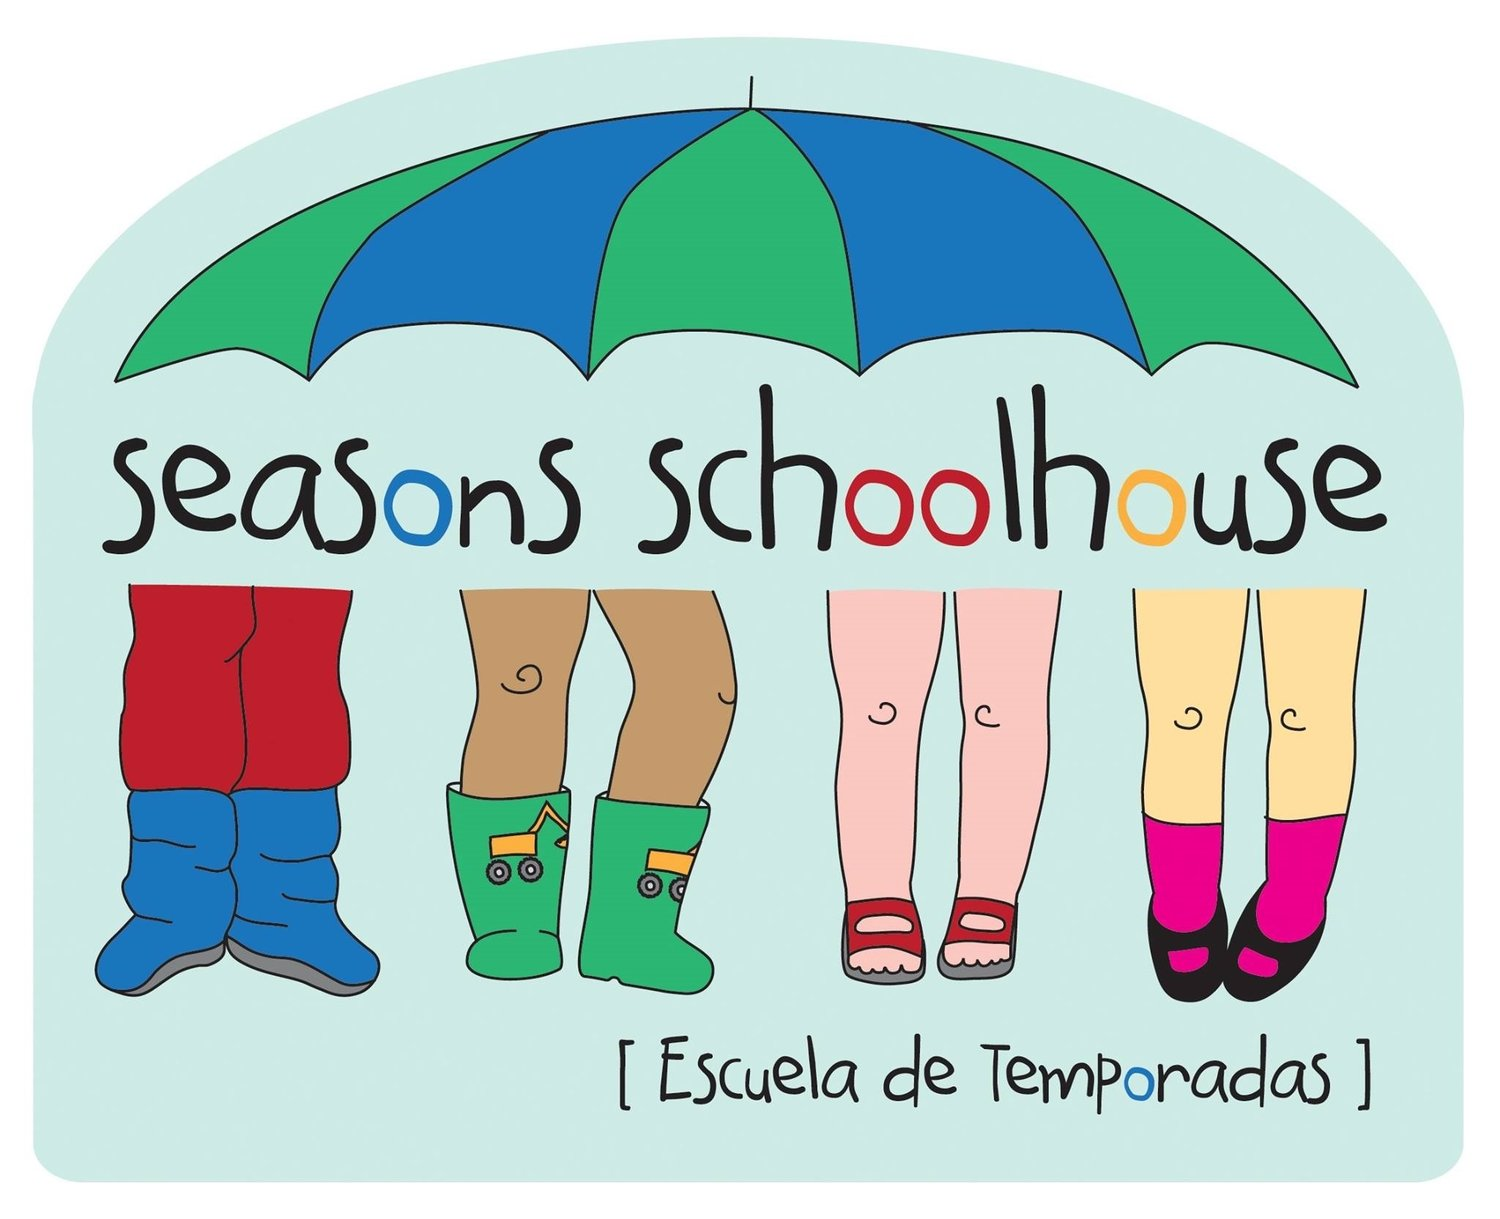 Seasons Schoolhouse